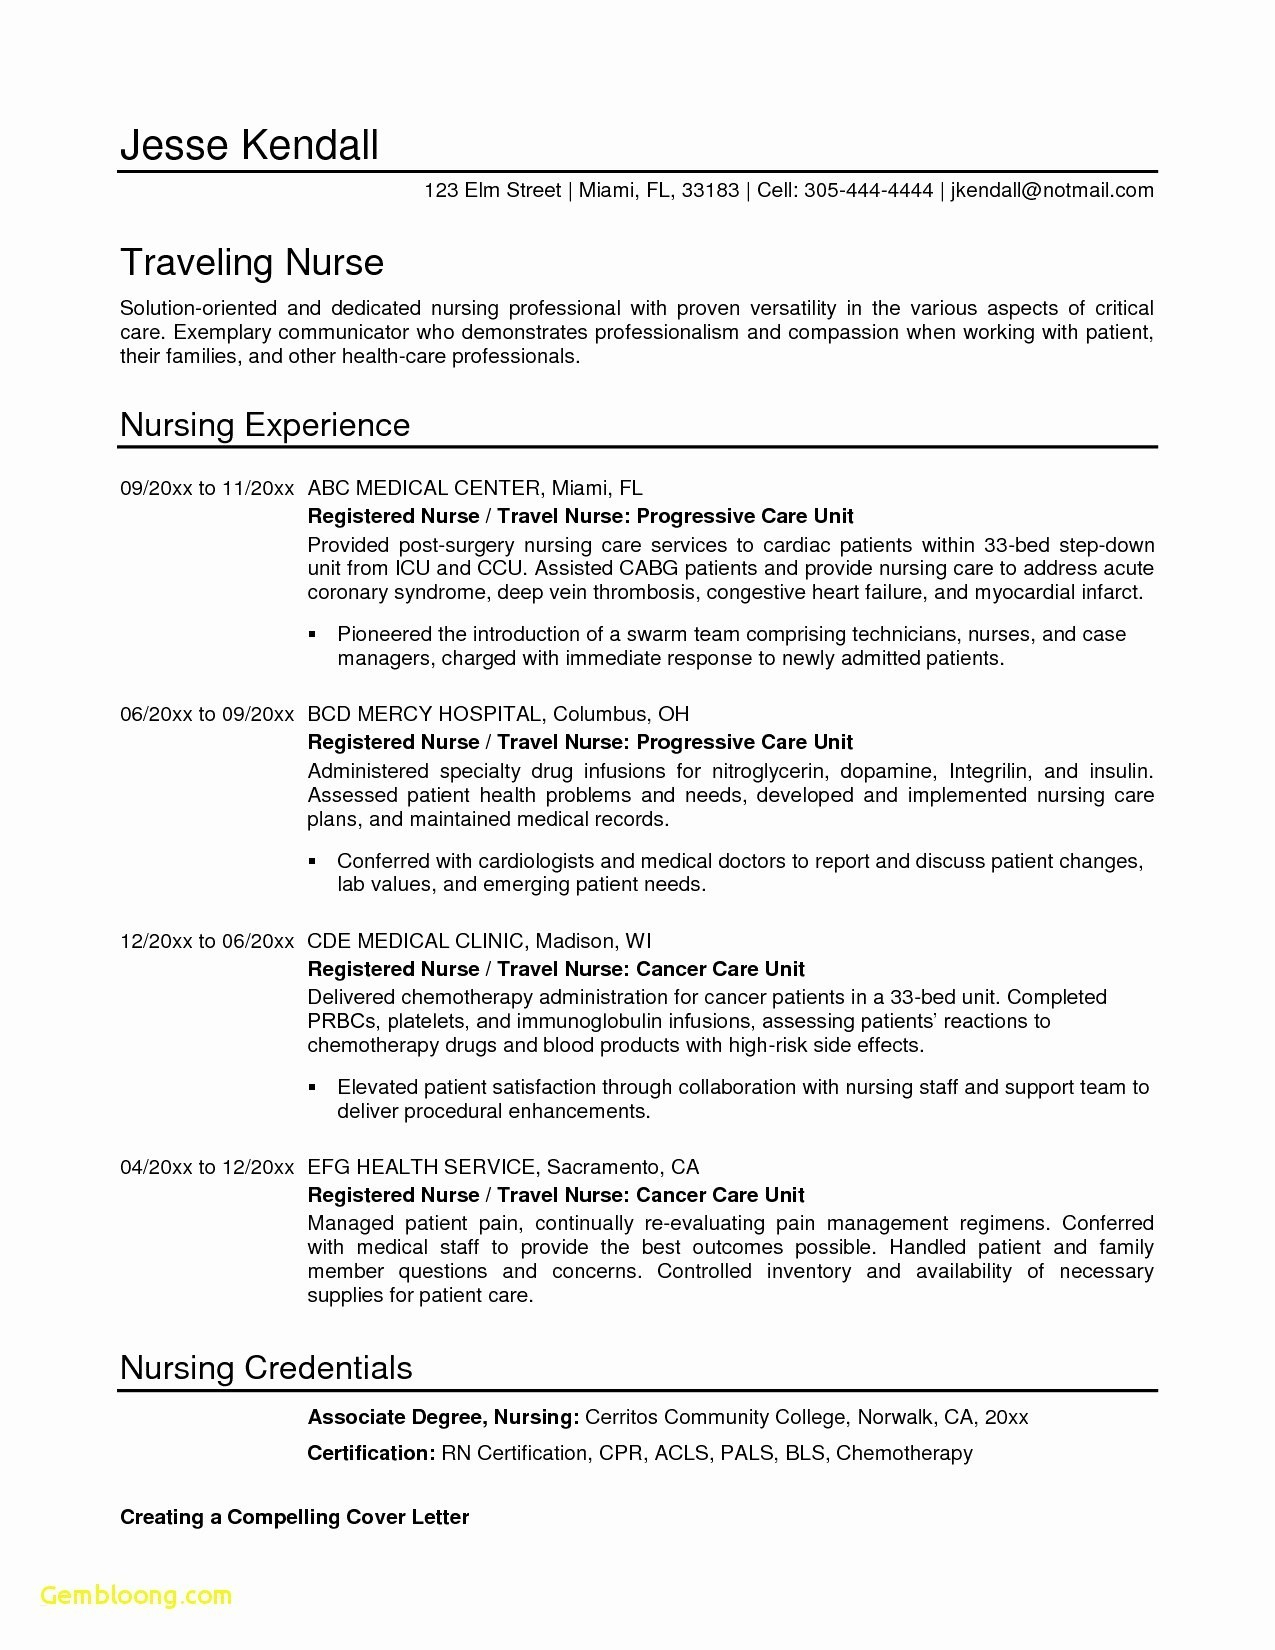 Best Free Cover Letter Template - Lovely Free Cover Letter Template